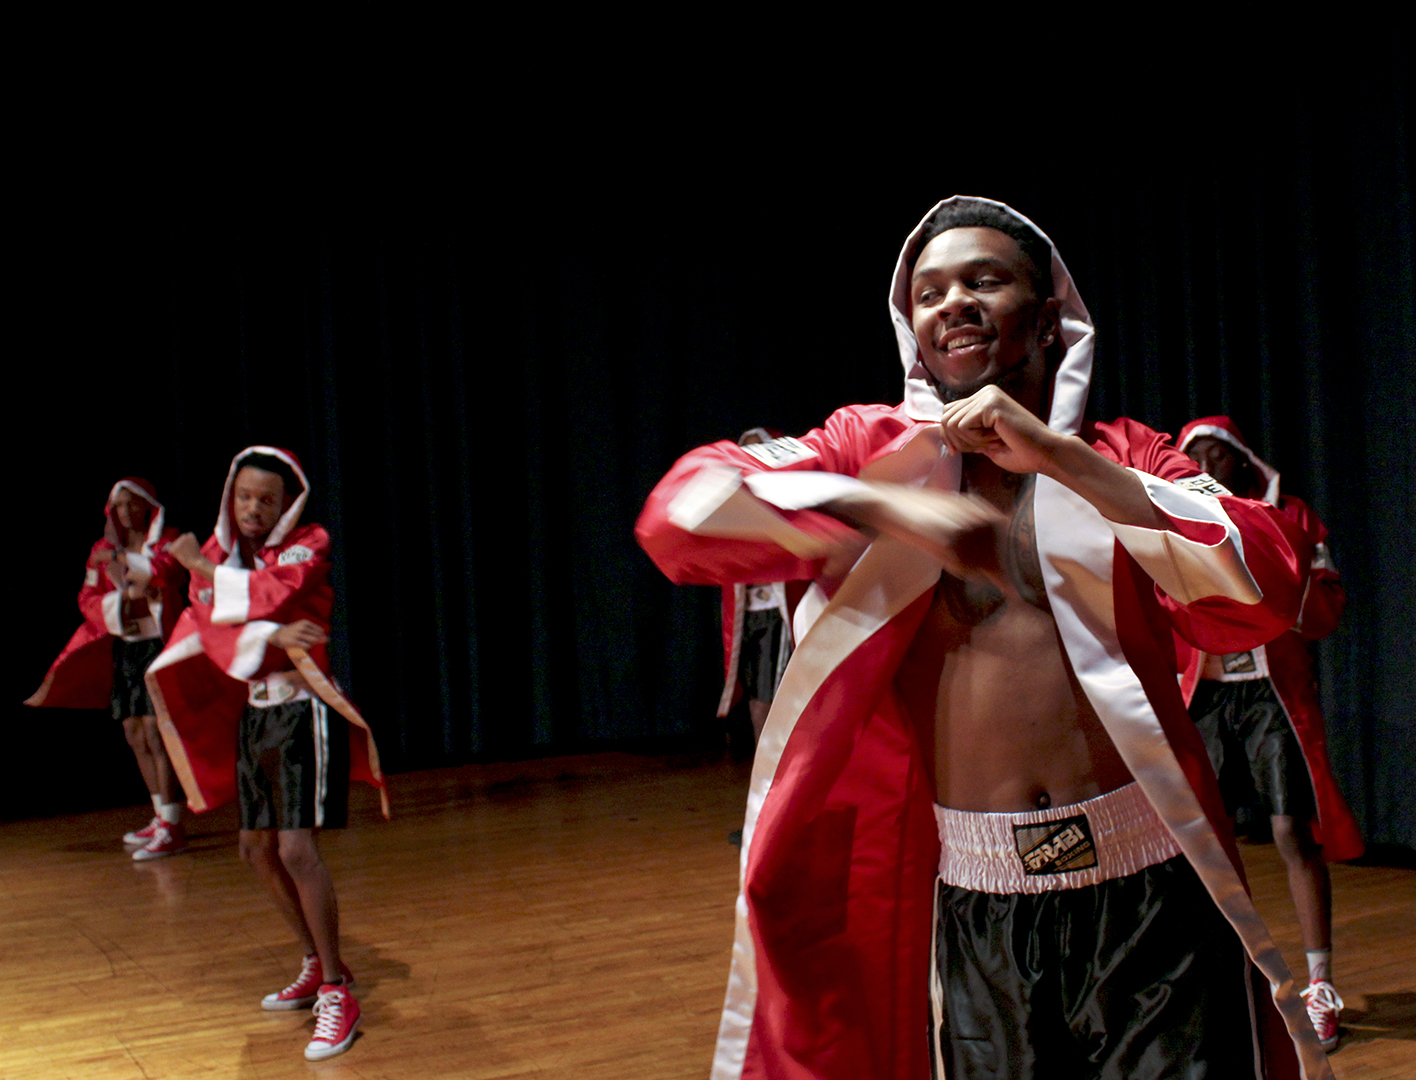 Memphis, TN, junior Vincent Holloway is seen practicing for the first annual 'Mr. Devastating' pageant, hosted by Delta Sigma Theta sorority. Holloway and his competitors have been practicing for 'Mr. Devastating' since early September. The winner of the pageant will be awarded a $350 scholarship.